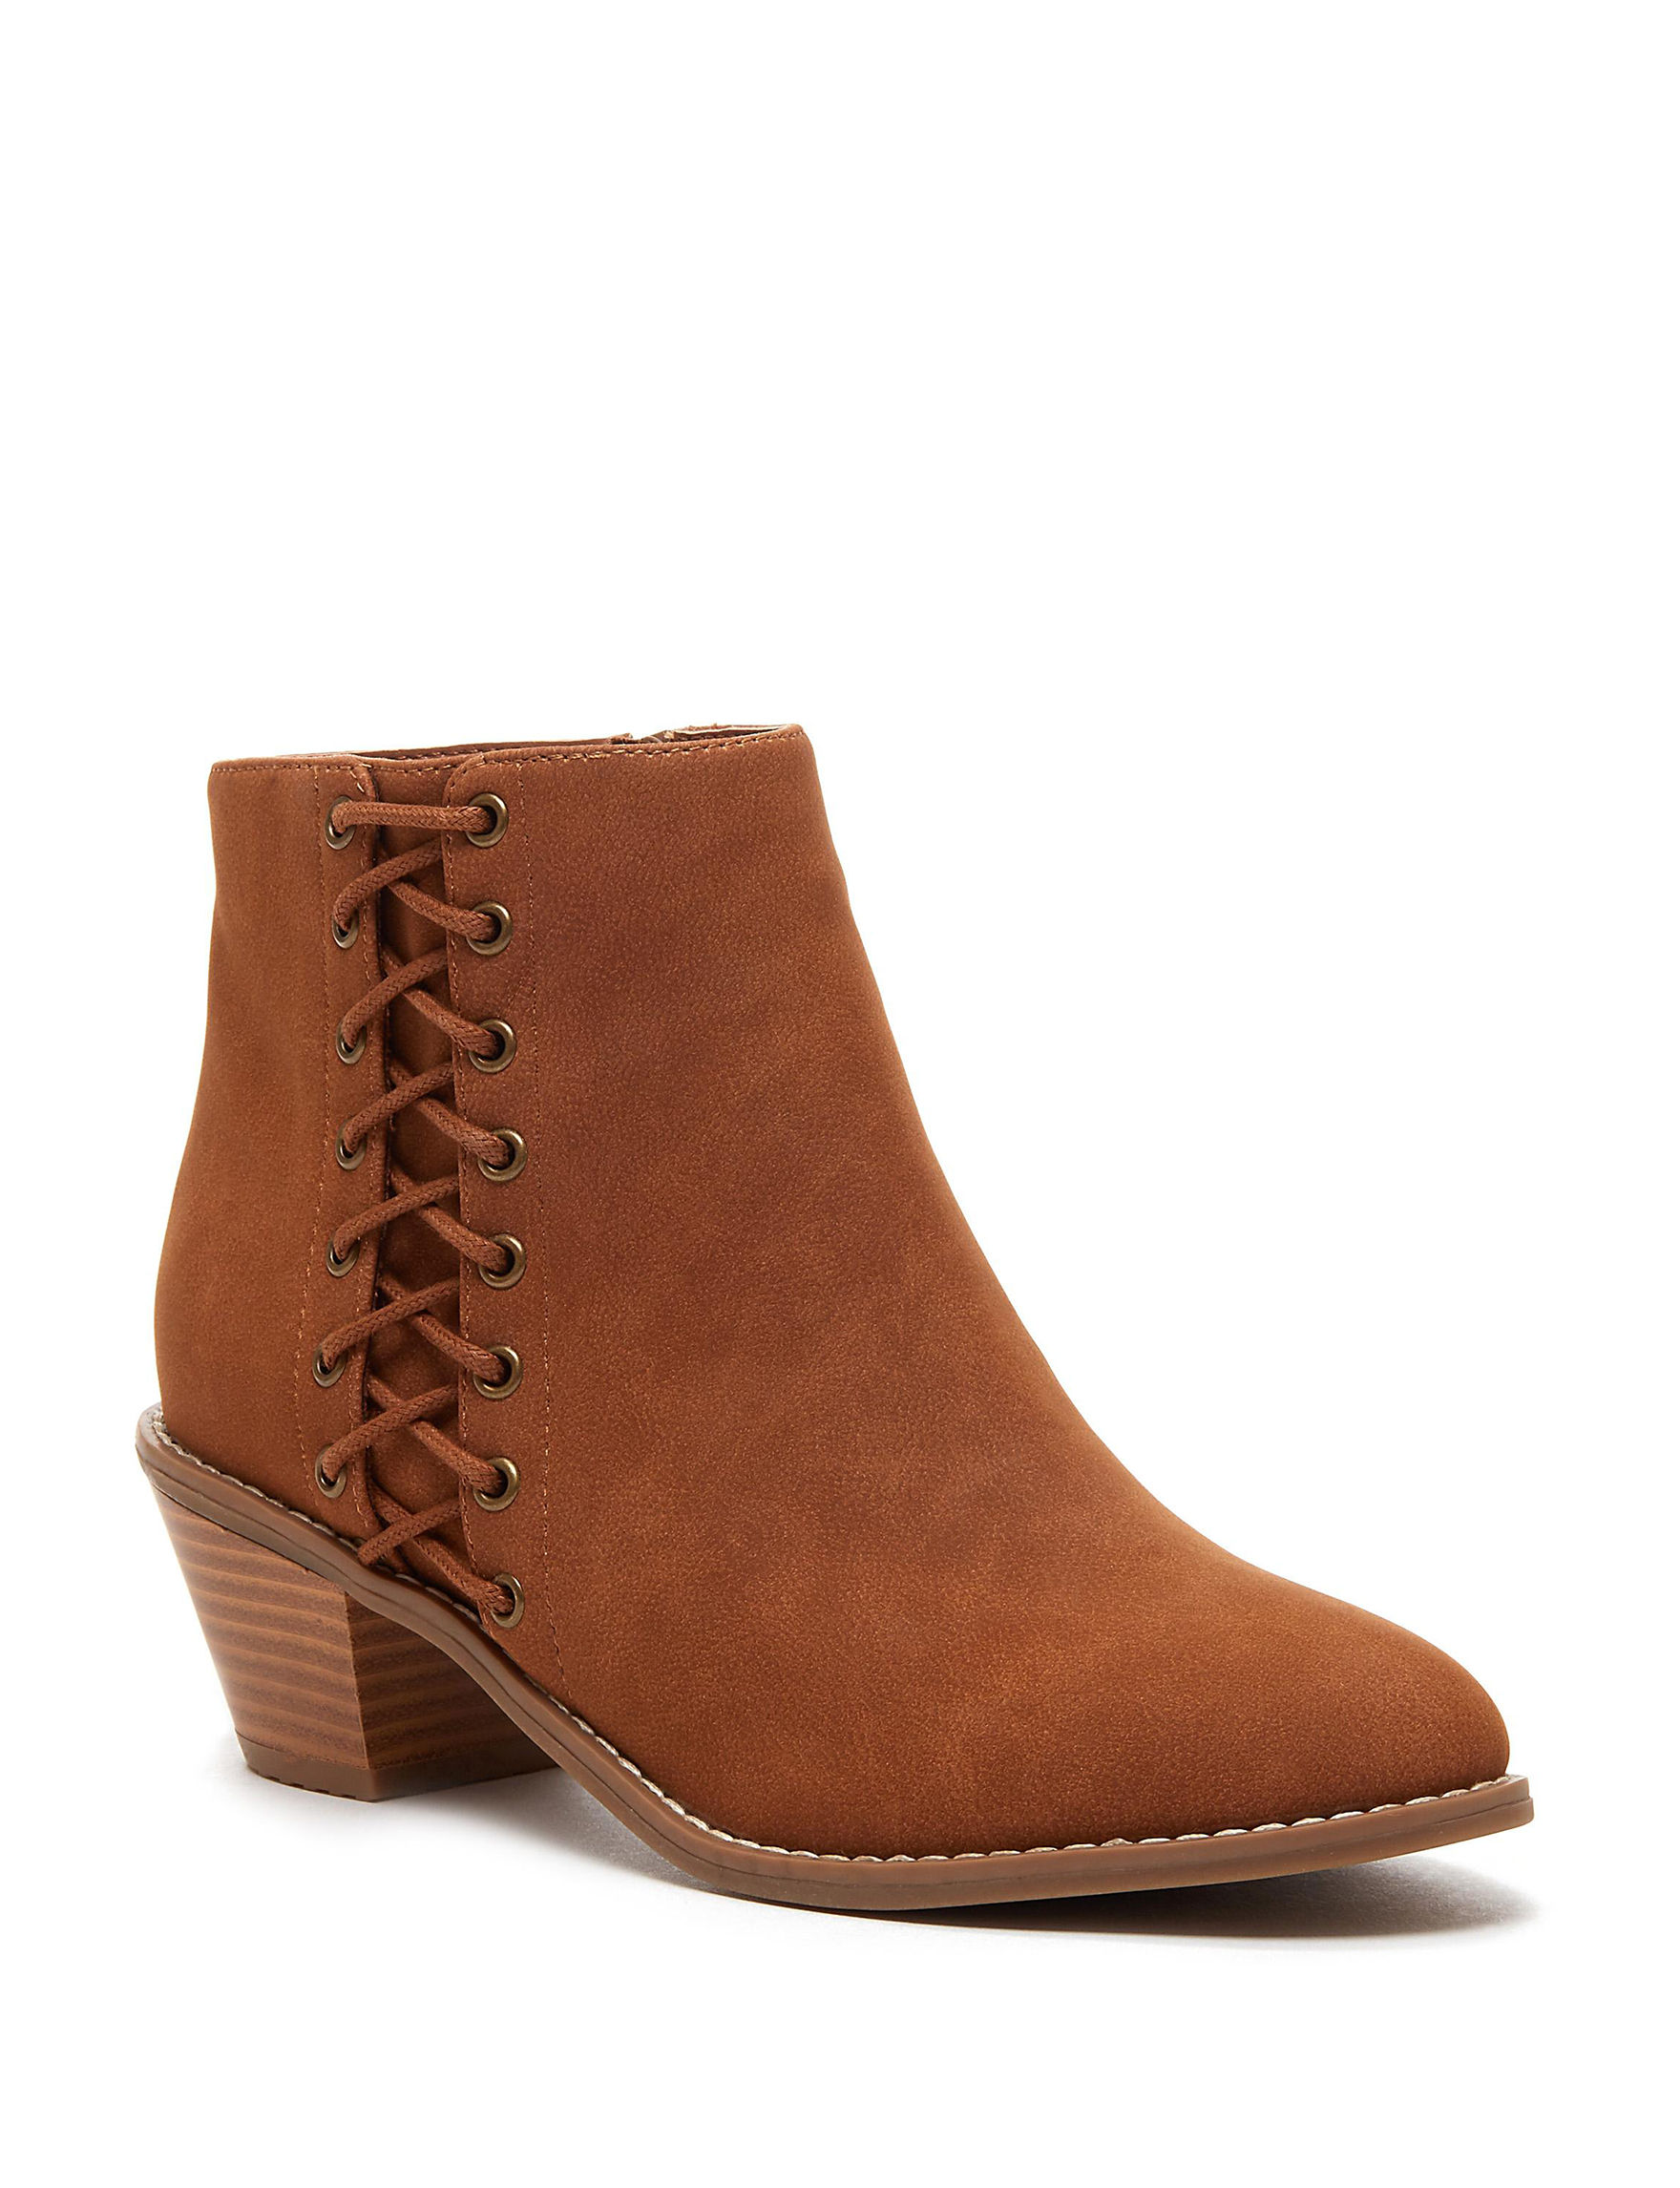 Rocket Dog Brown Ankle Boots & Booties